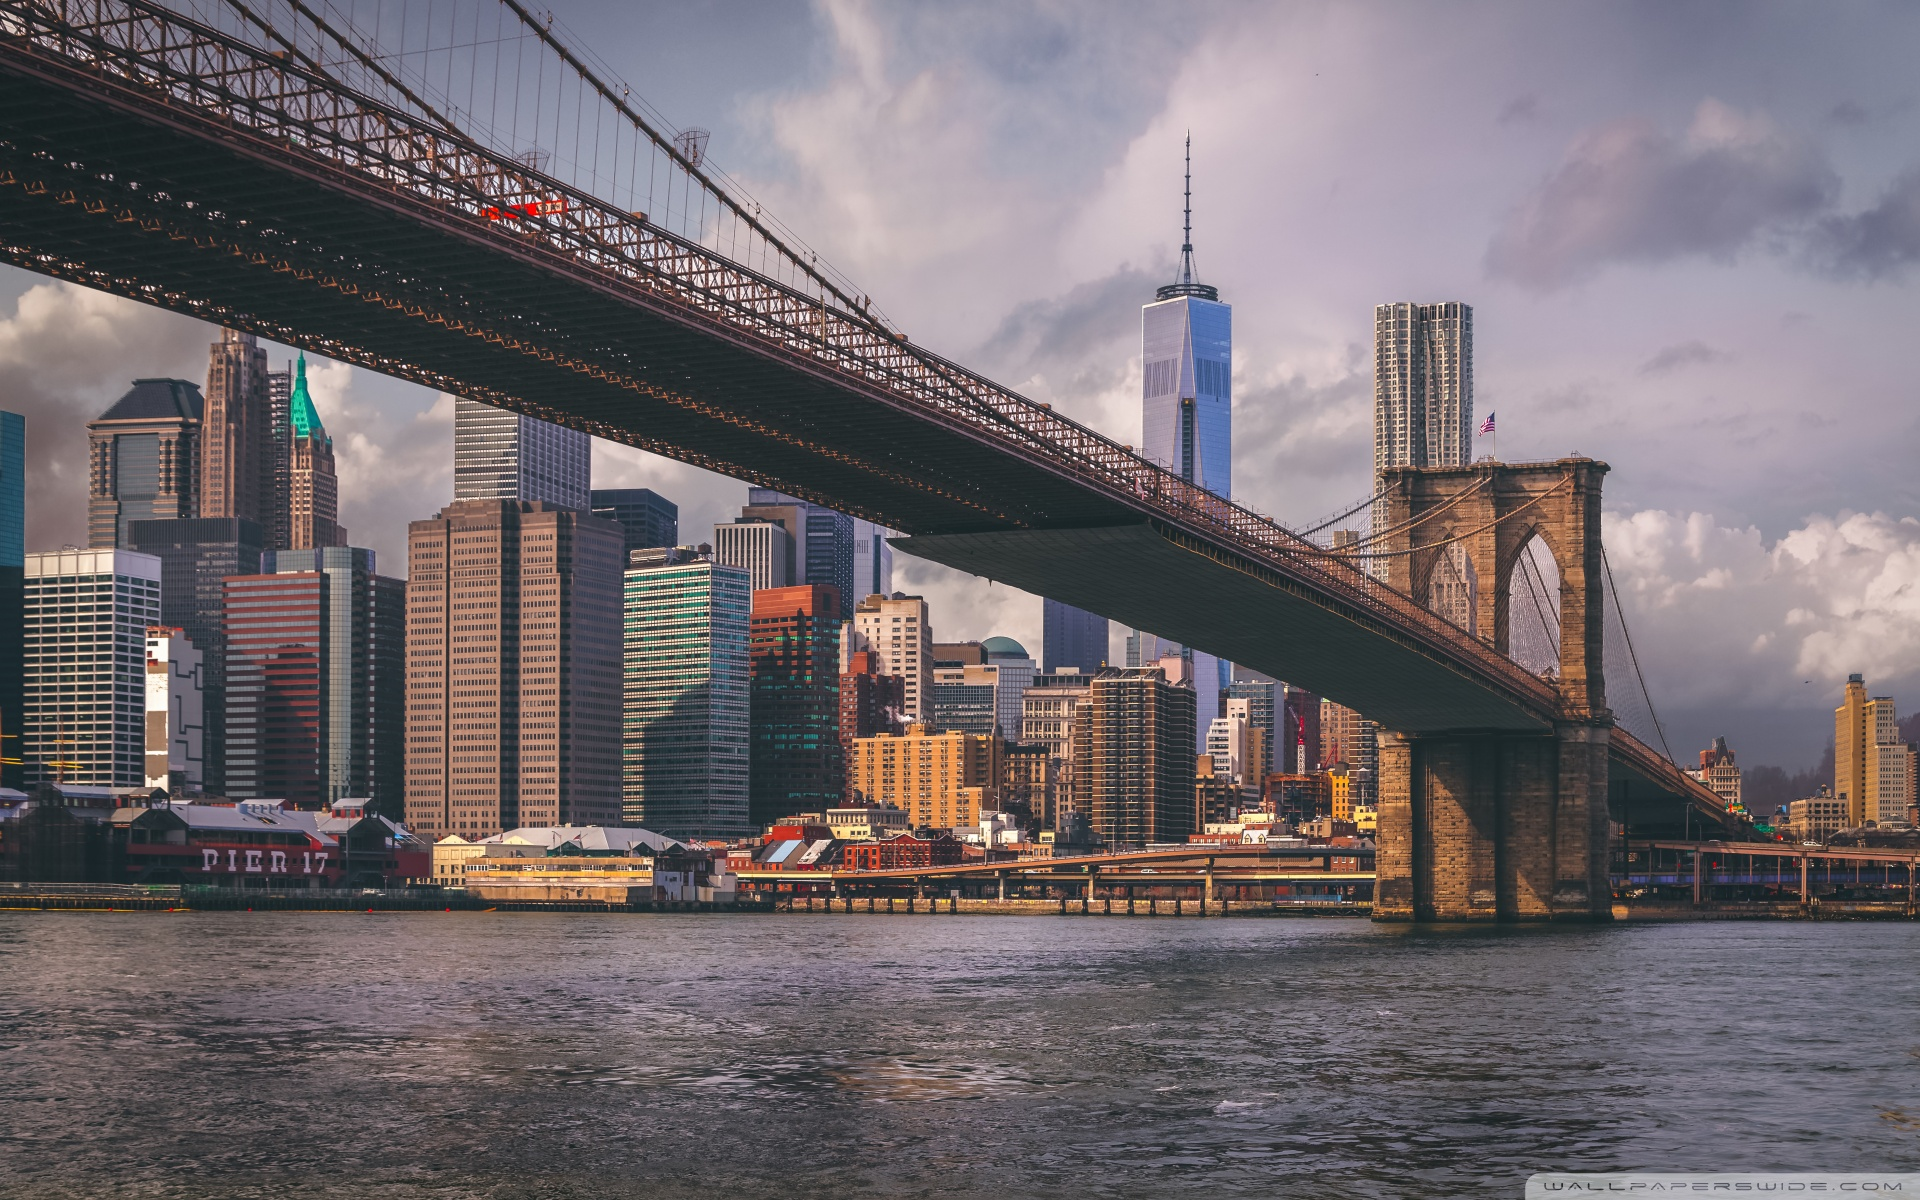 brooklyn_bridge-wallpaper-1920x1200.jpg